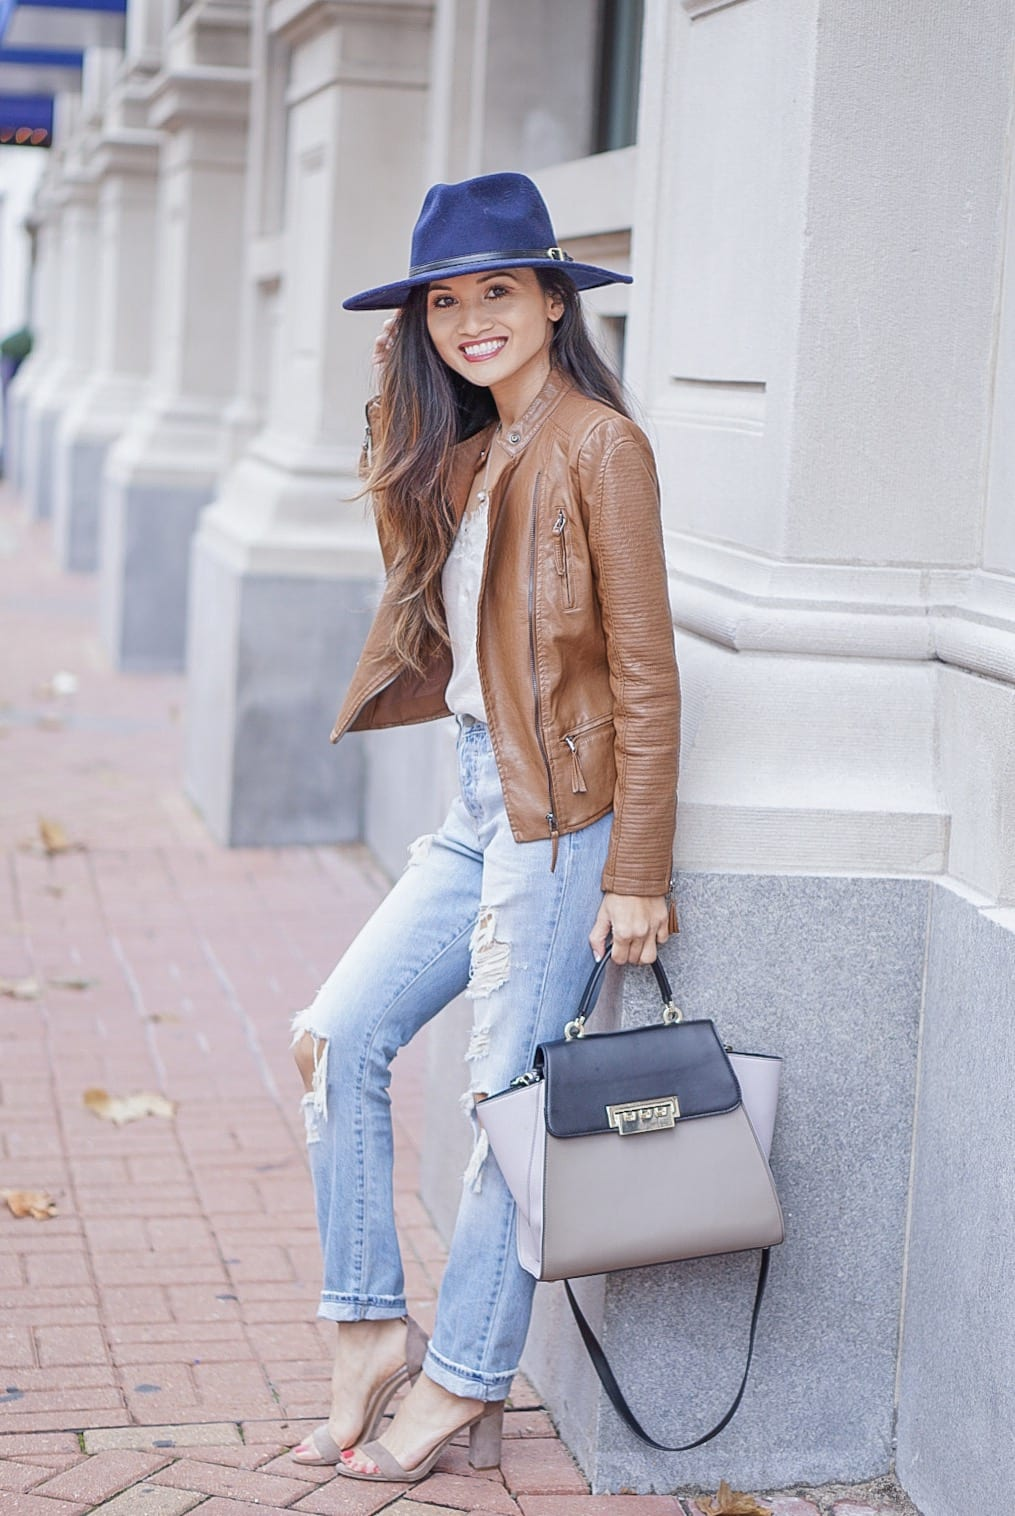 brown leather jacket, moto leather jacket, mom jeans, distressed jeans, navy felt hat, Steve Madden Carson sandal, white lace cami, Zac Zac Posen bag, spring outfit